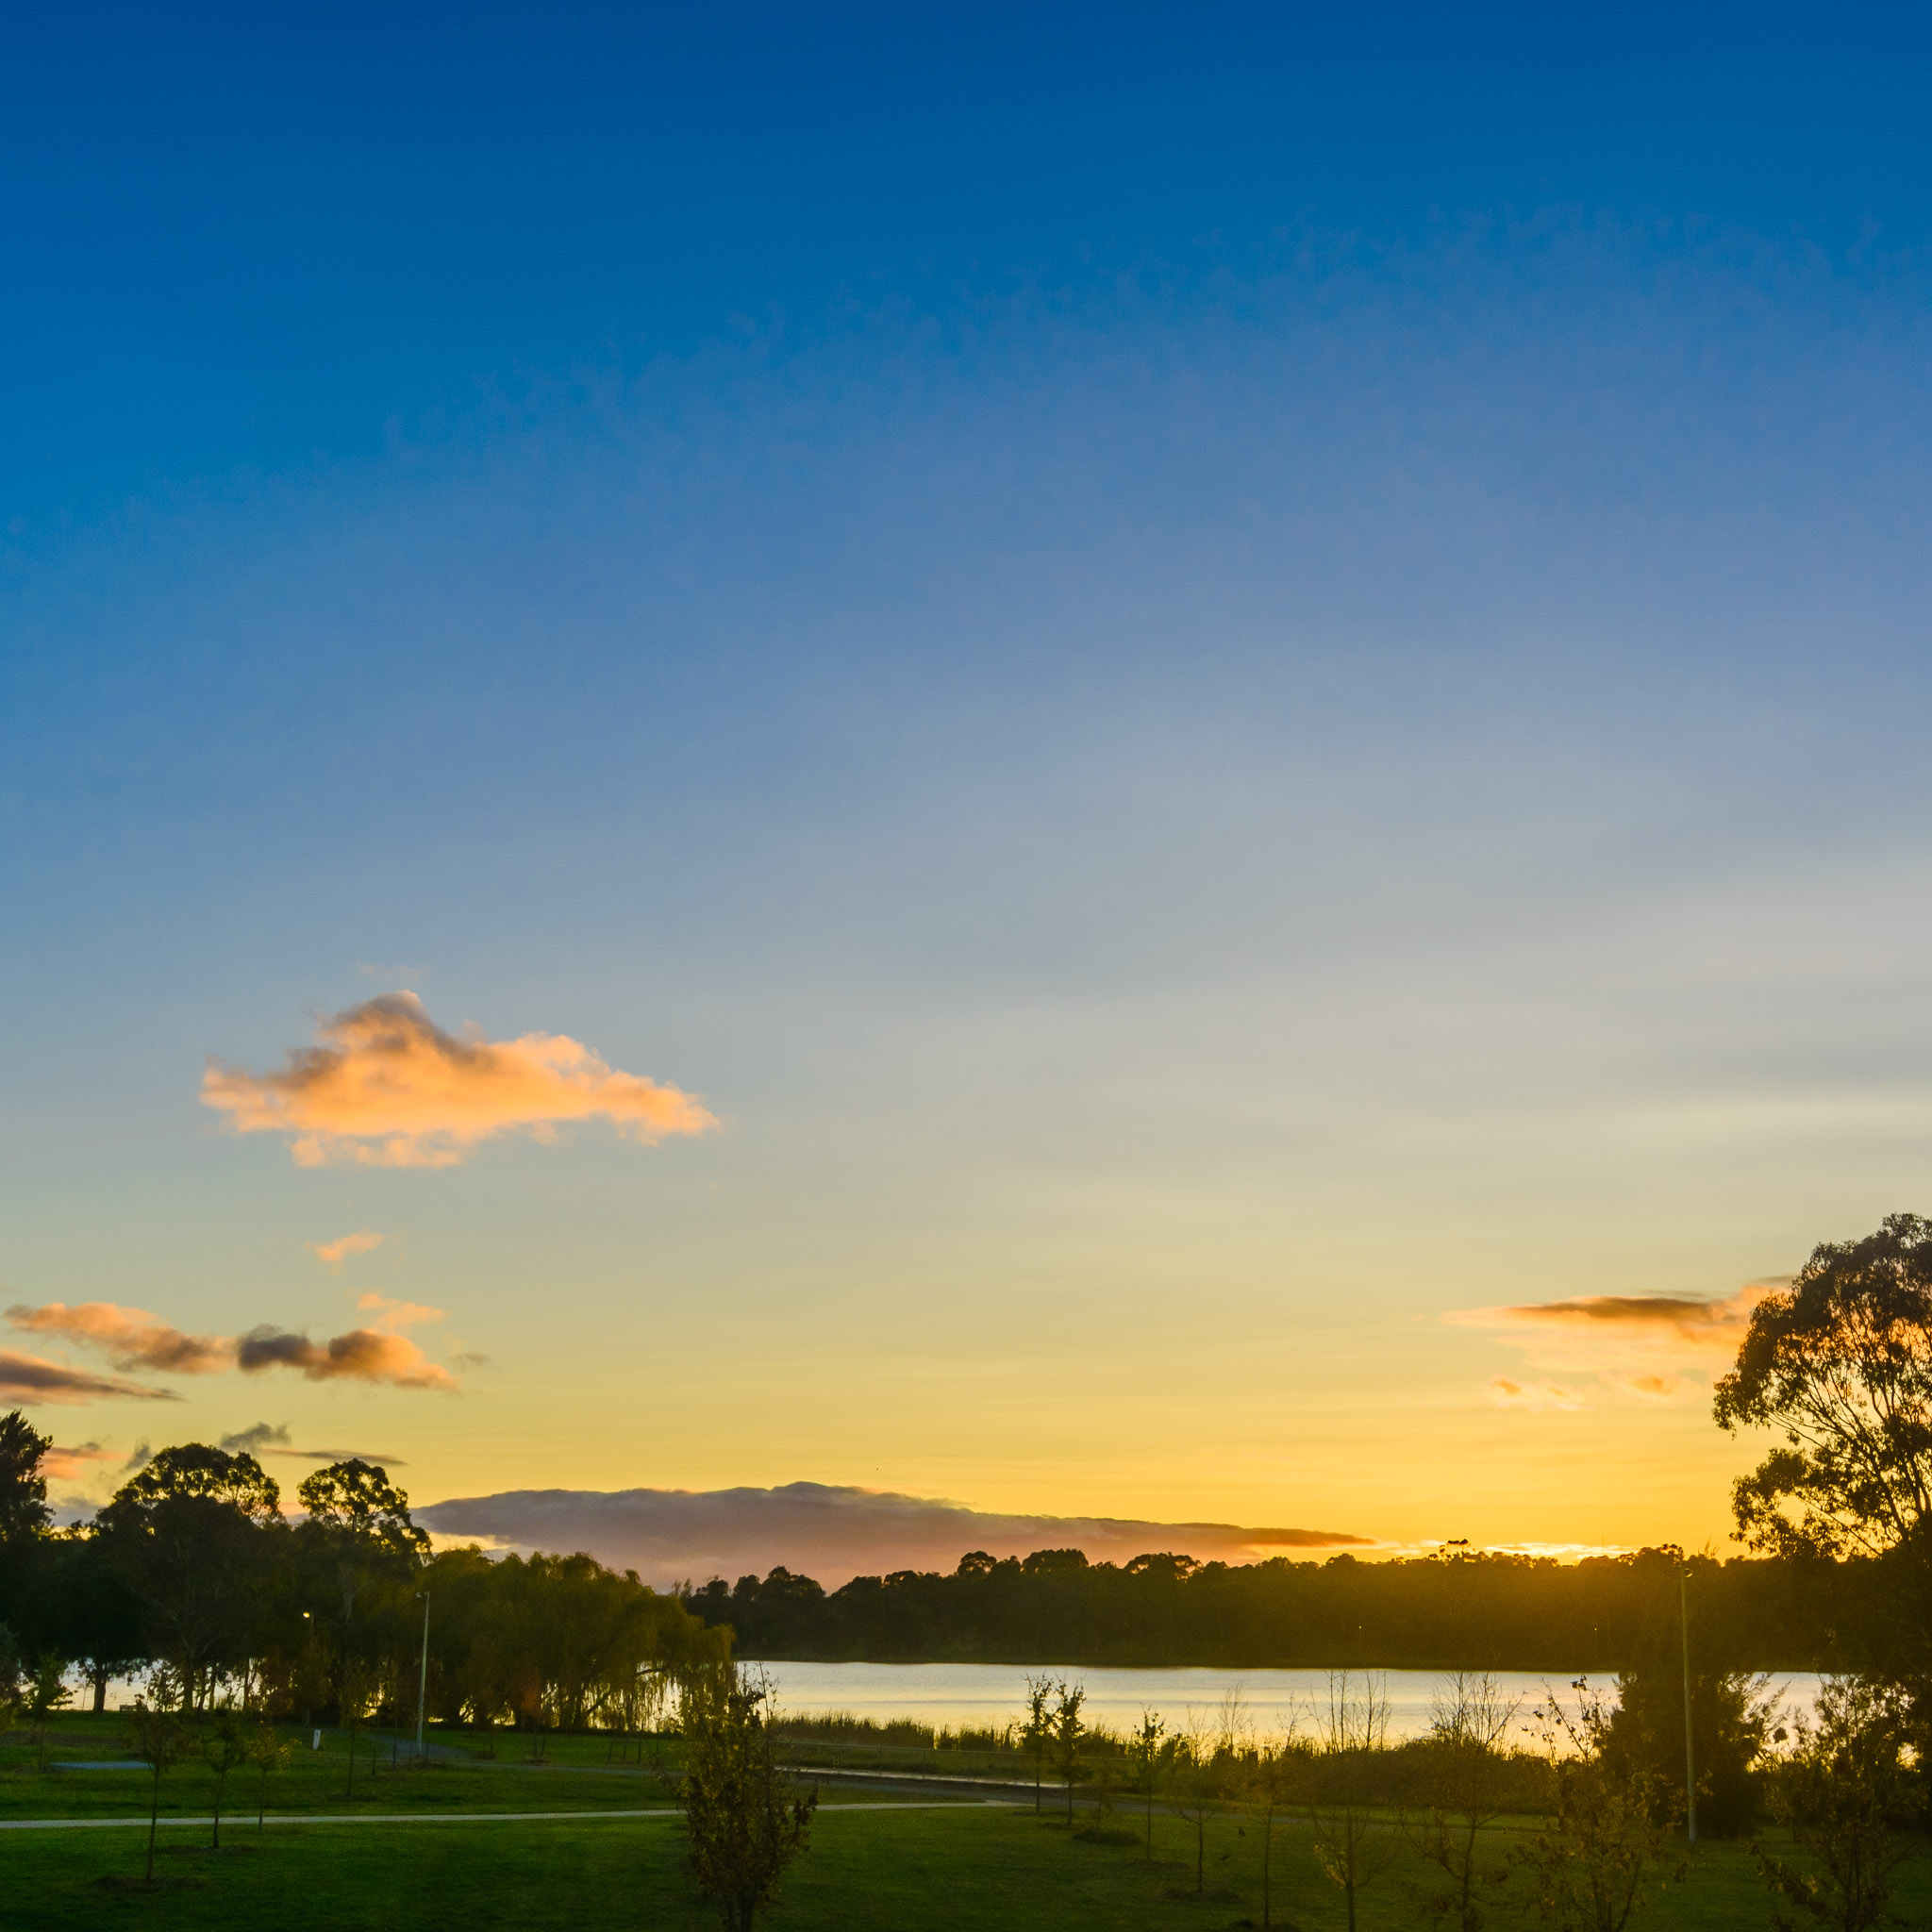 Sunrise over Lake Ginninderra